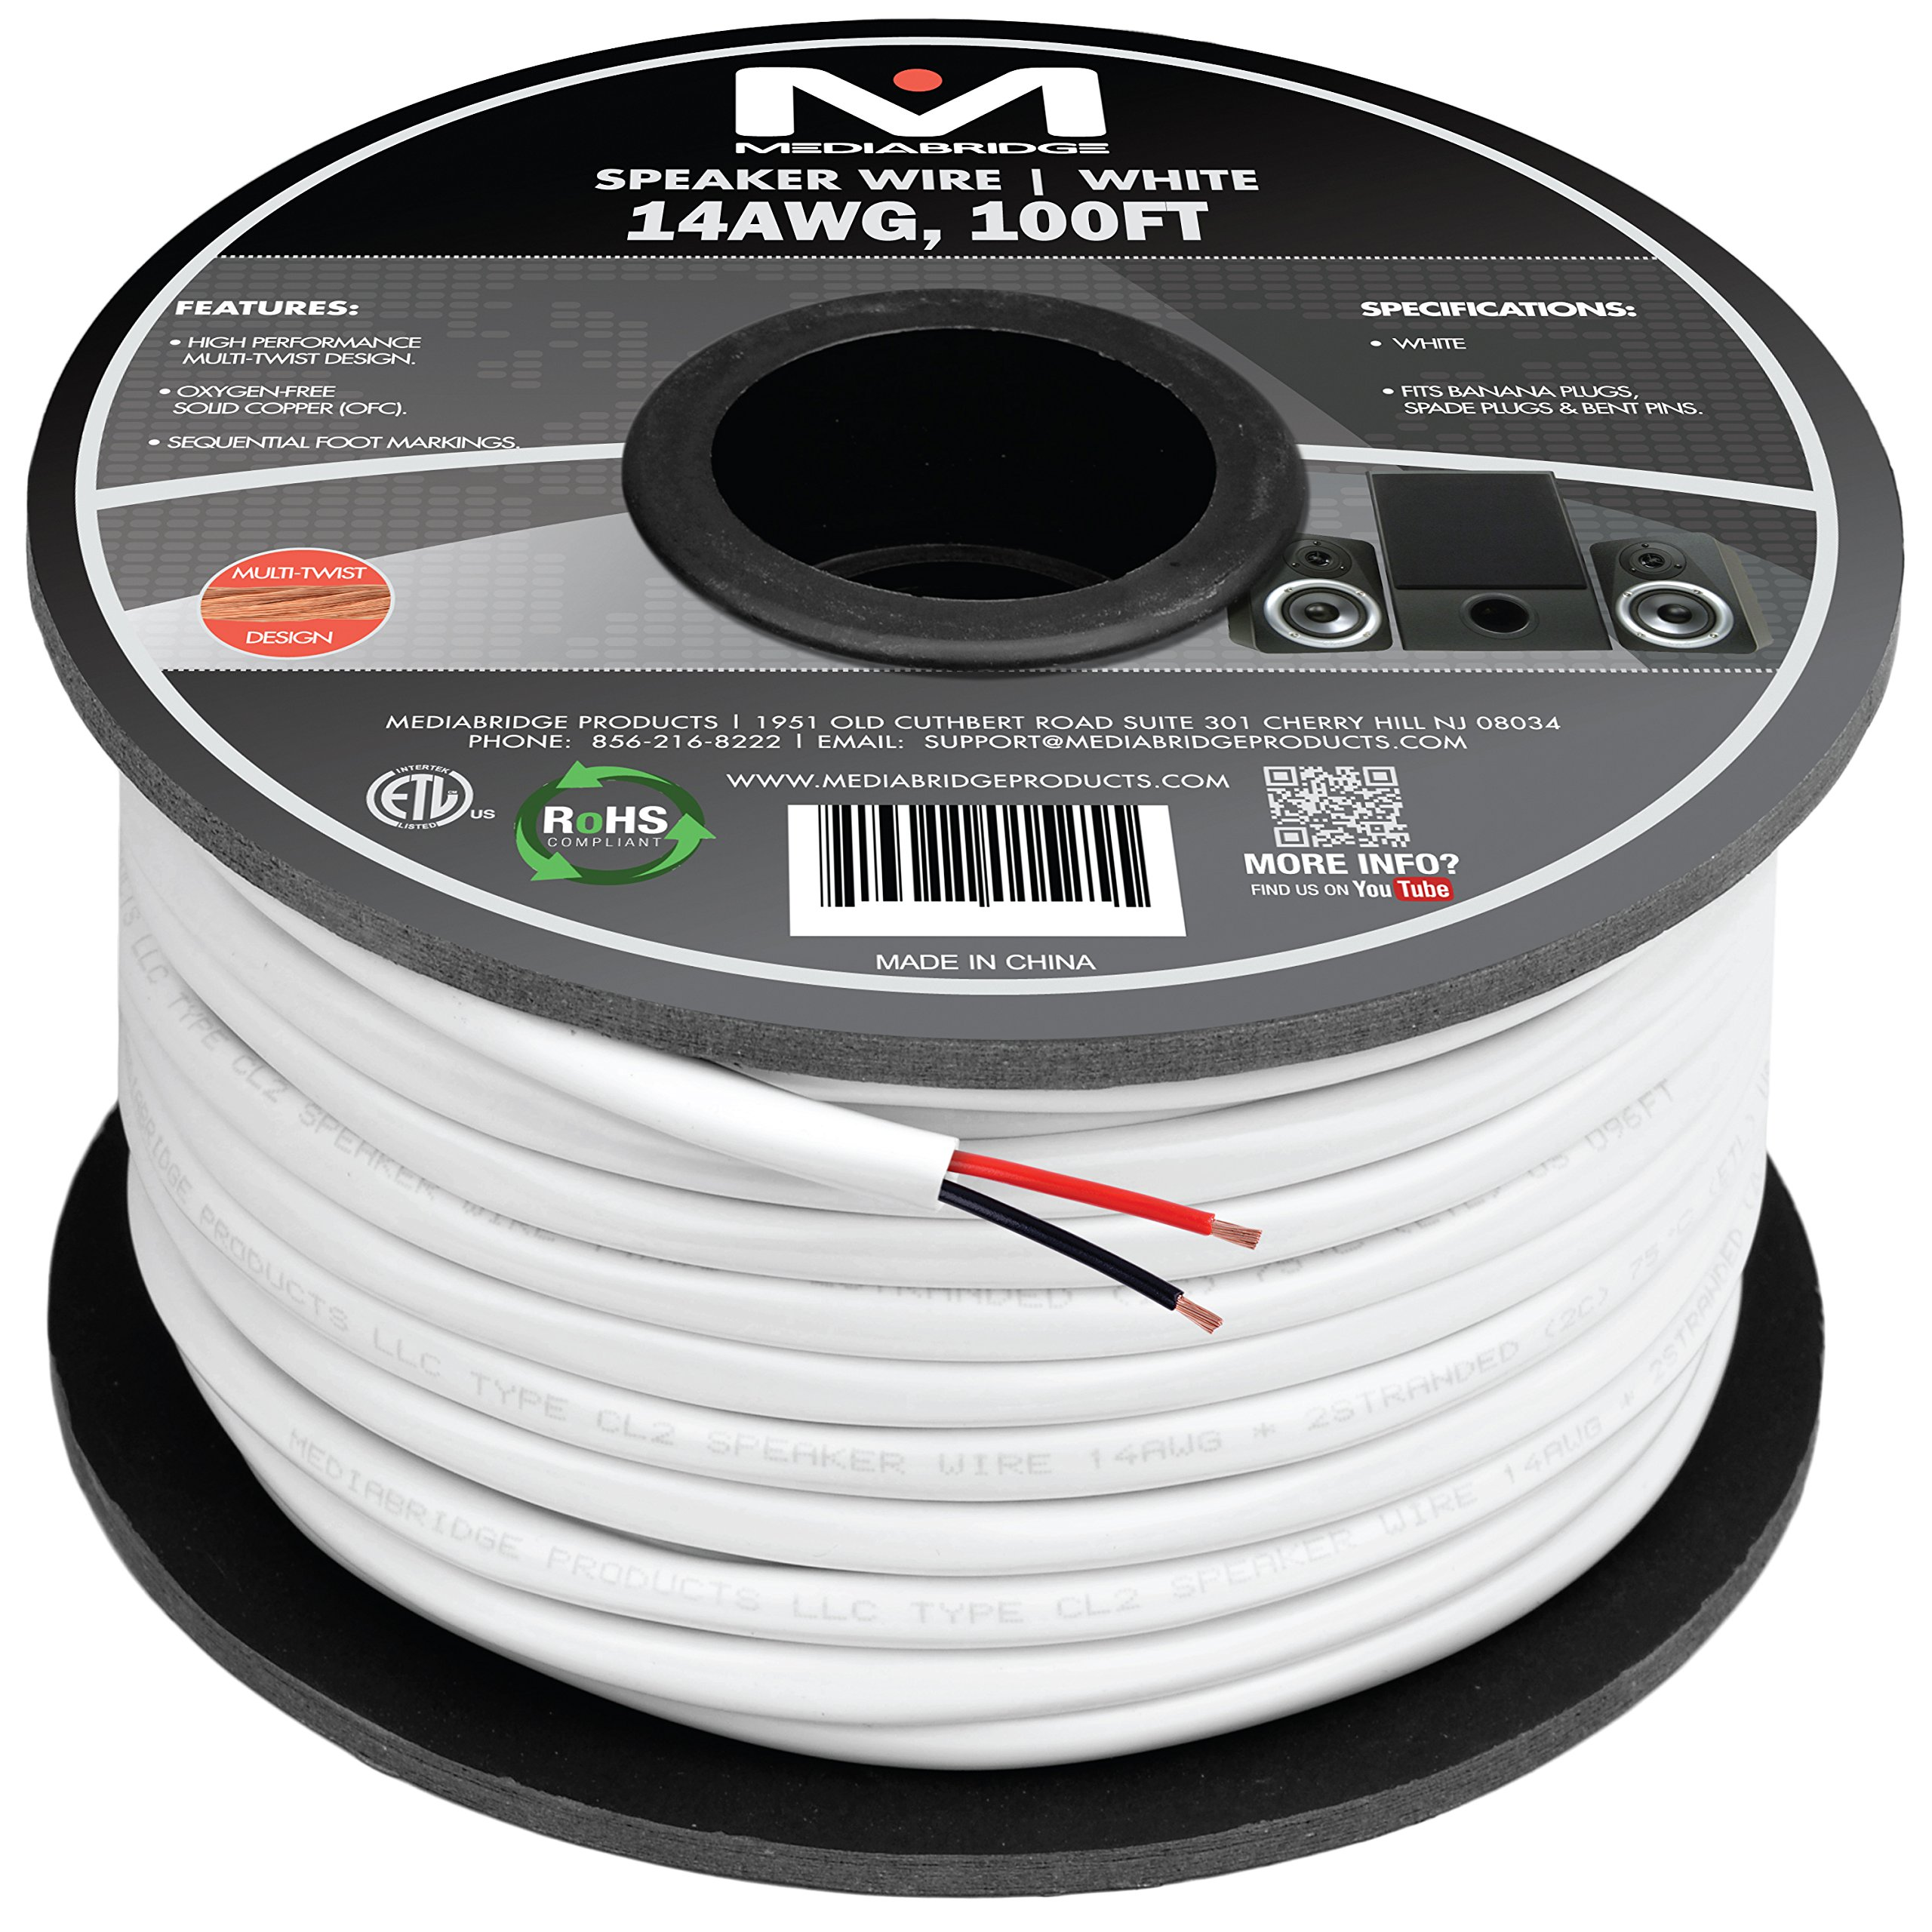 Mediabridge 14AWG 2-Conductor Speaker Wire (100 Feet, White) - 99.9% Oxygen Free Copper - ETL Listed & CL2 Rated for In-Wall Use (Part# SW-14X2-100-WH)